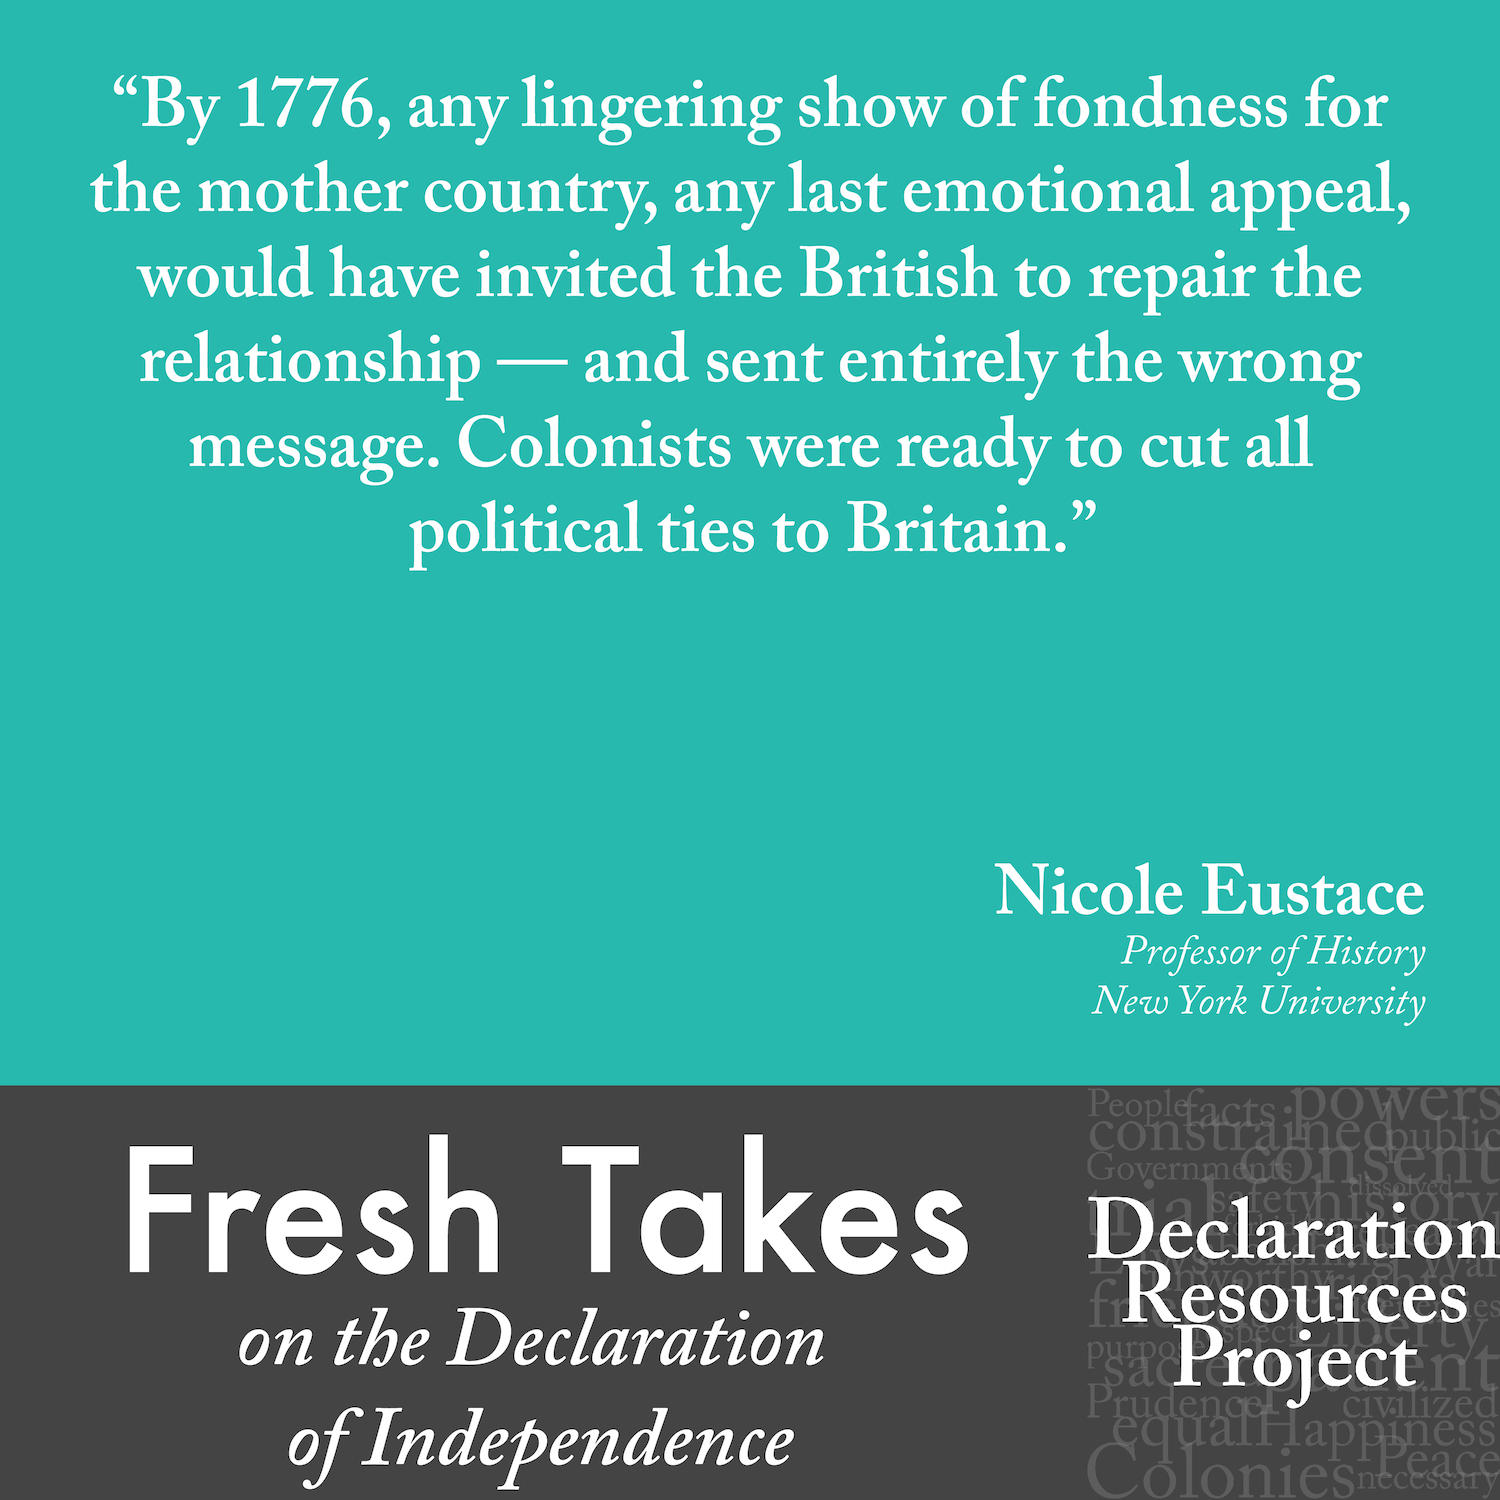 Nicole Eustace's Fresh Take on the Declaration of Independence